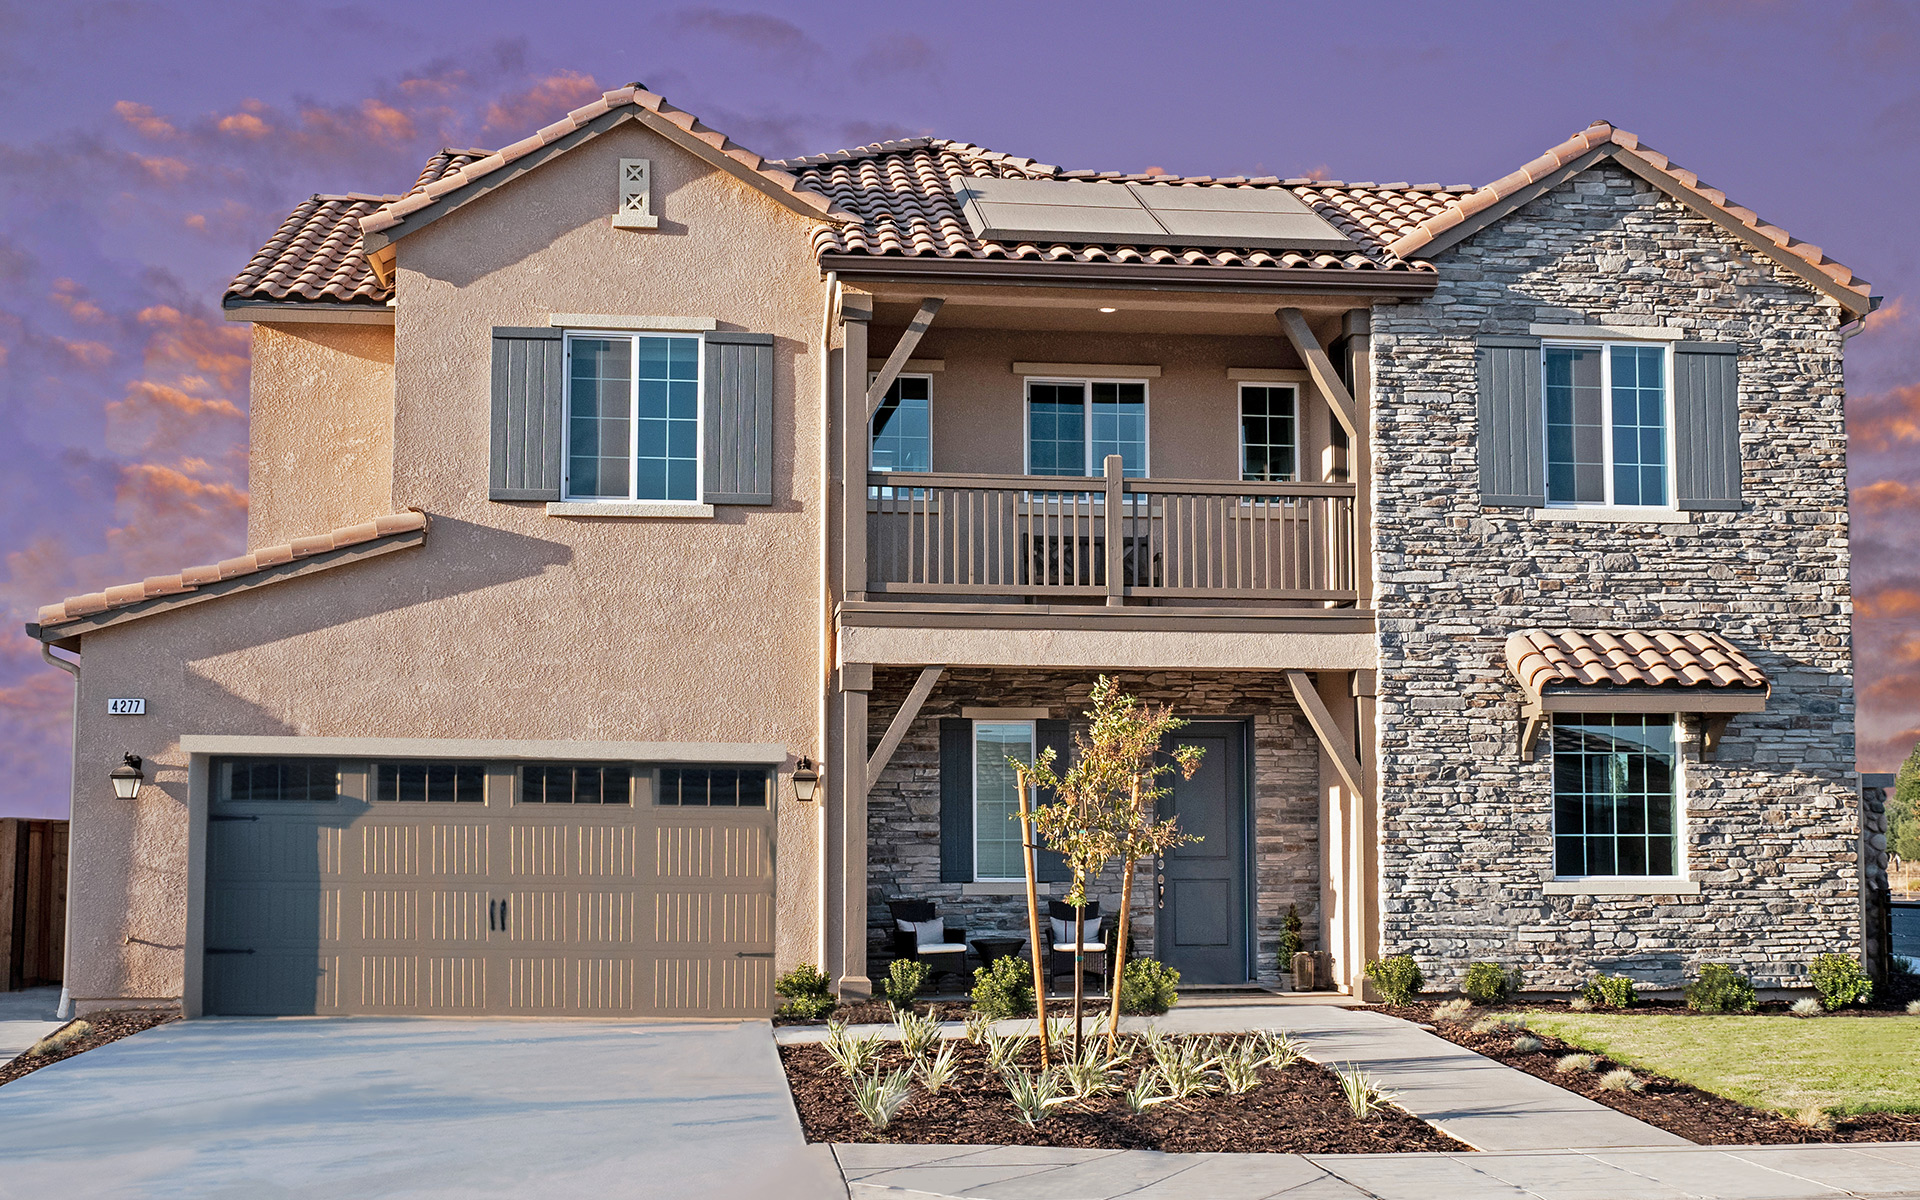 SNEAK PEEK: Available Homes For Sale! We're Open – Schedule Self-Guided Tour Today